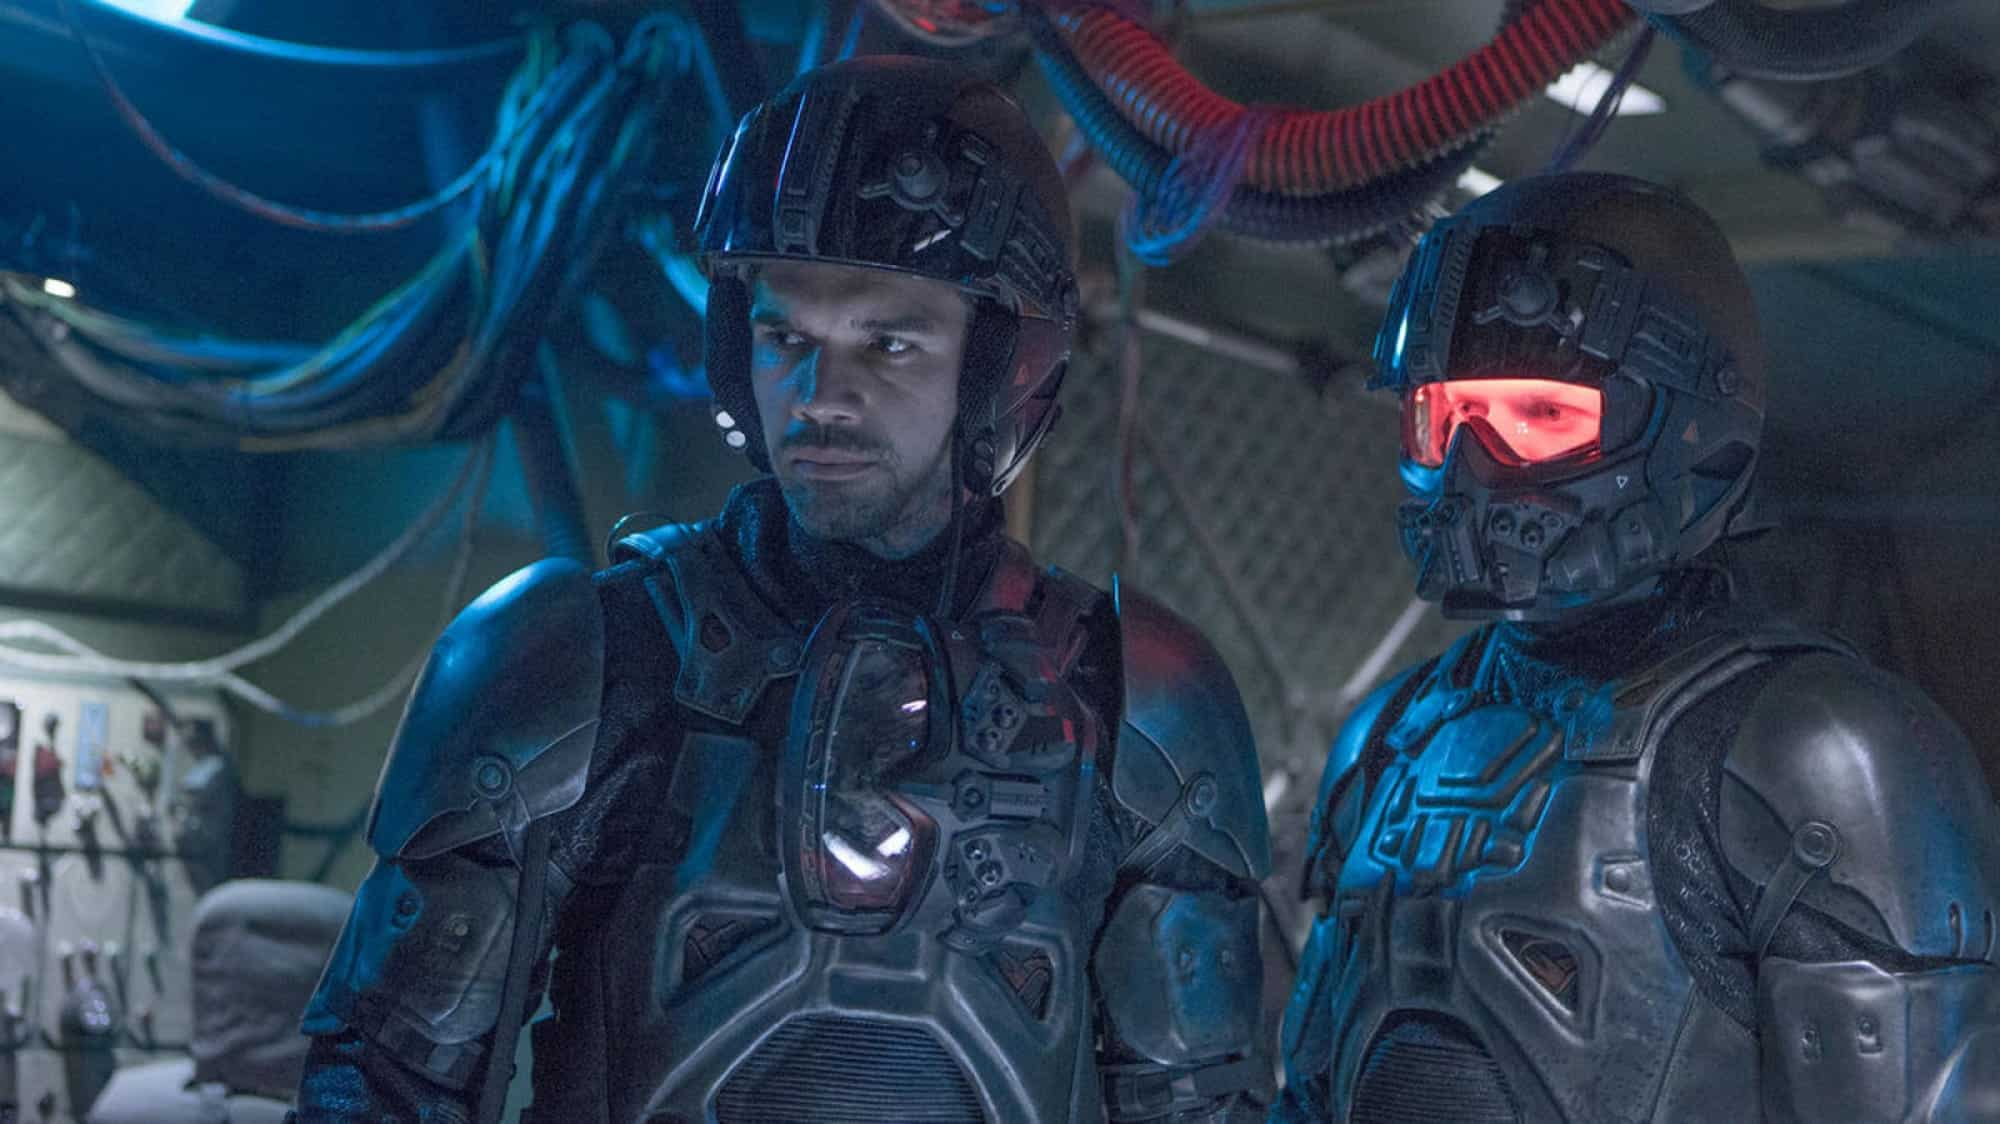 The Expanse defining science fiction show of decade 2010s 2020 SyFy Amazon Prime Video class warfare and tribalism